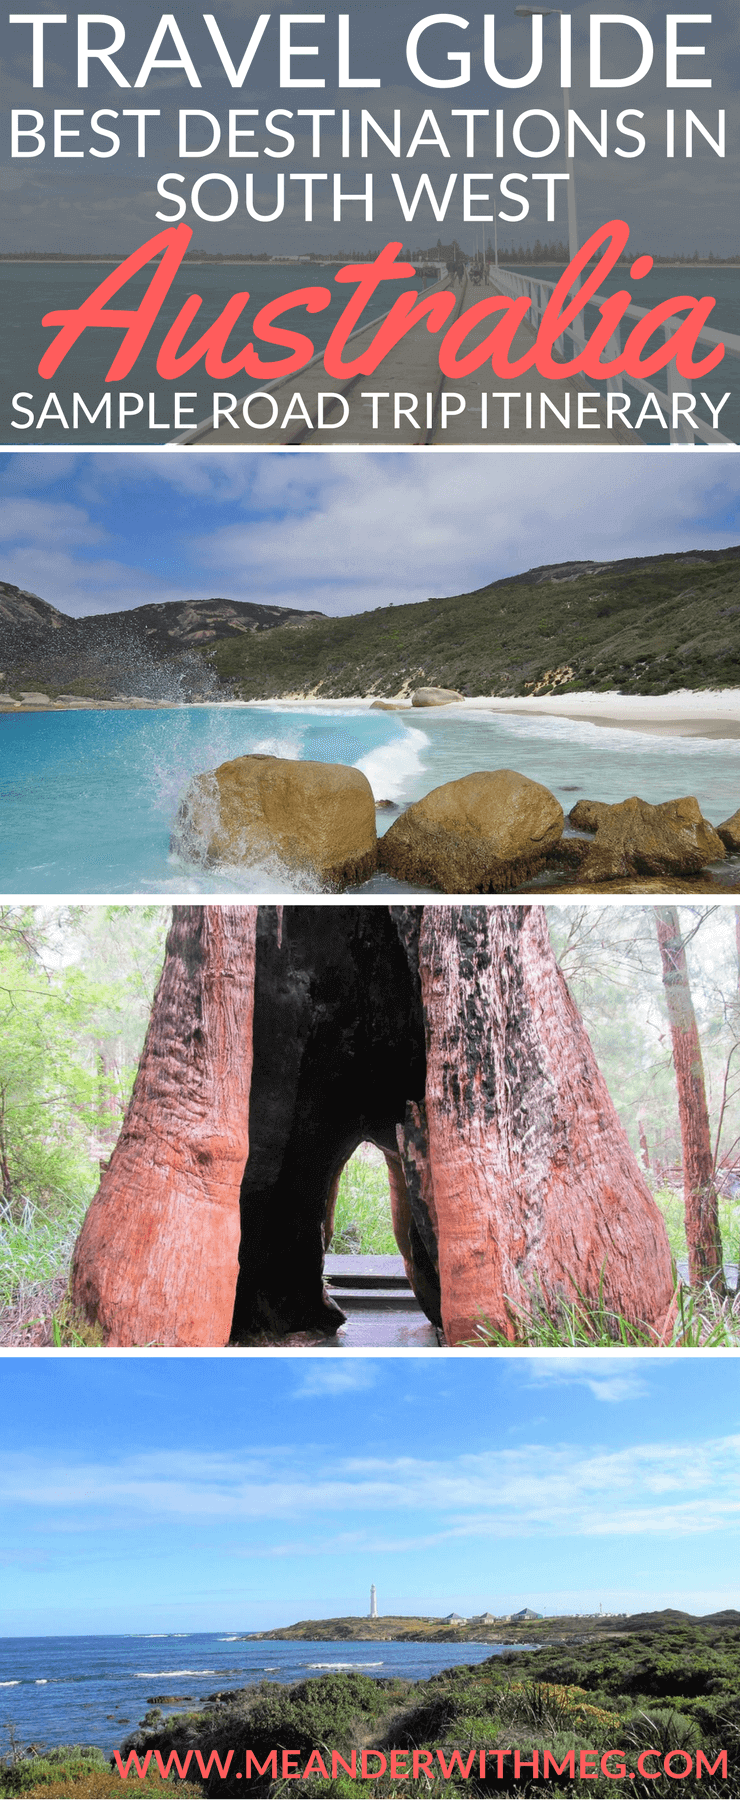 Planning a road trip in the south west of Australia? Here's my itinerary from Perth to Albany to help you get inspired! | Western Australia | Travel guide | Travel itinerary | Road trip | Perth to Albany | Things to do in Western Australia | WA | Margaret River | Busselton